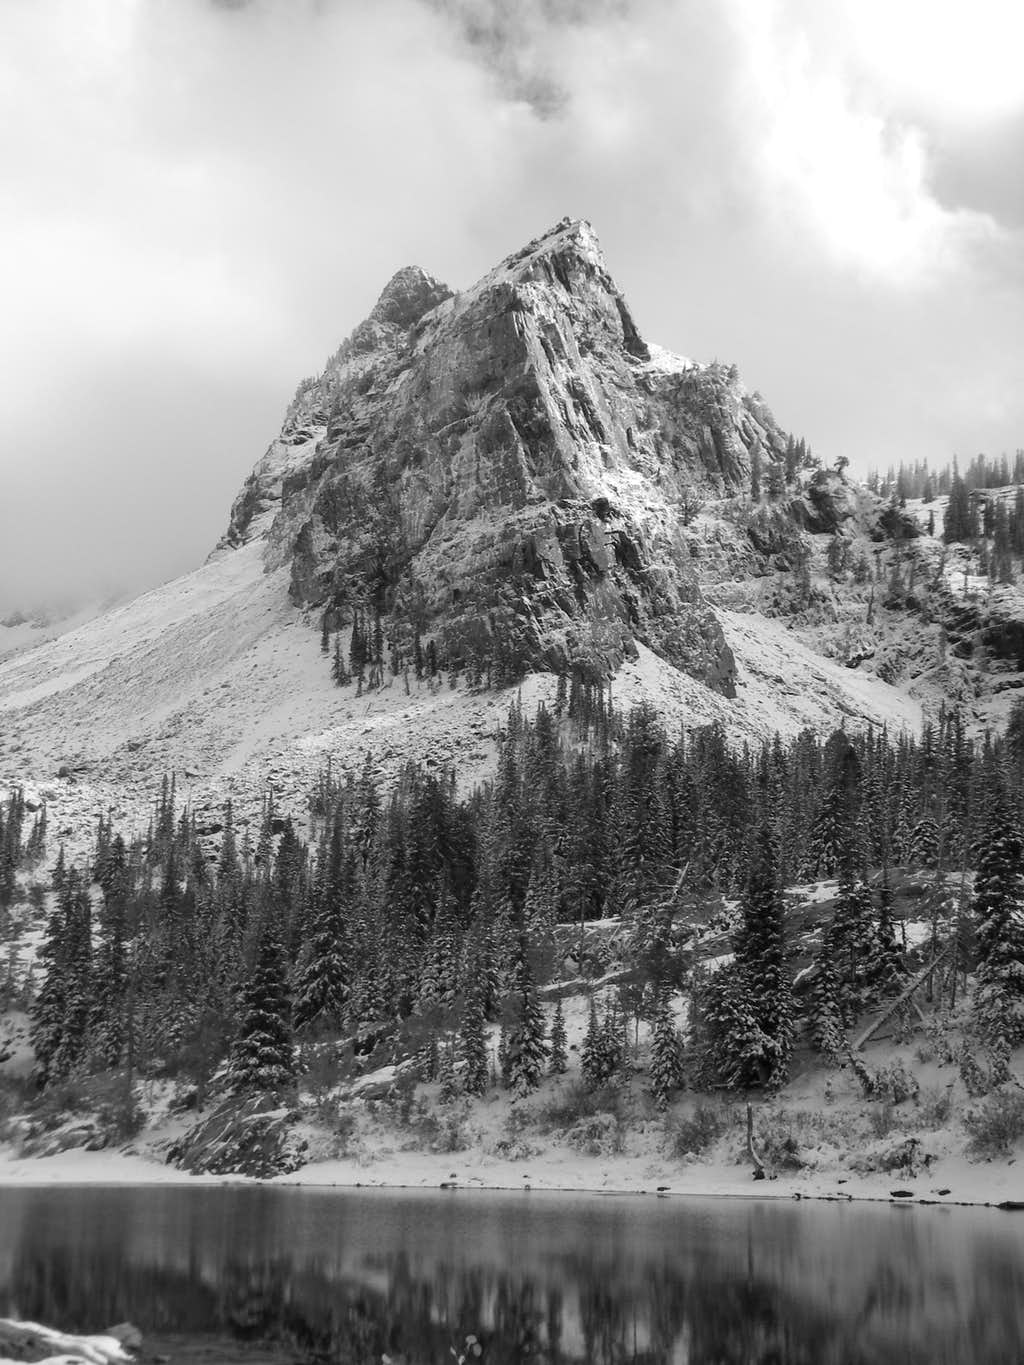 A Dramatic View of Sundial Peak and Lake Blanche.... Just another day at church